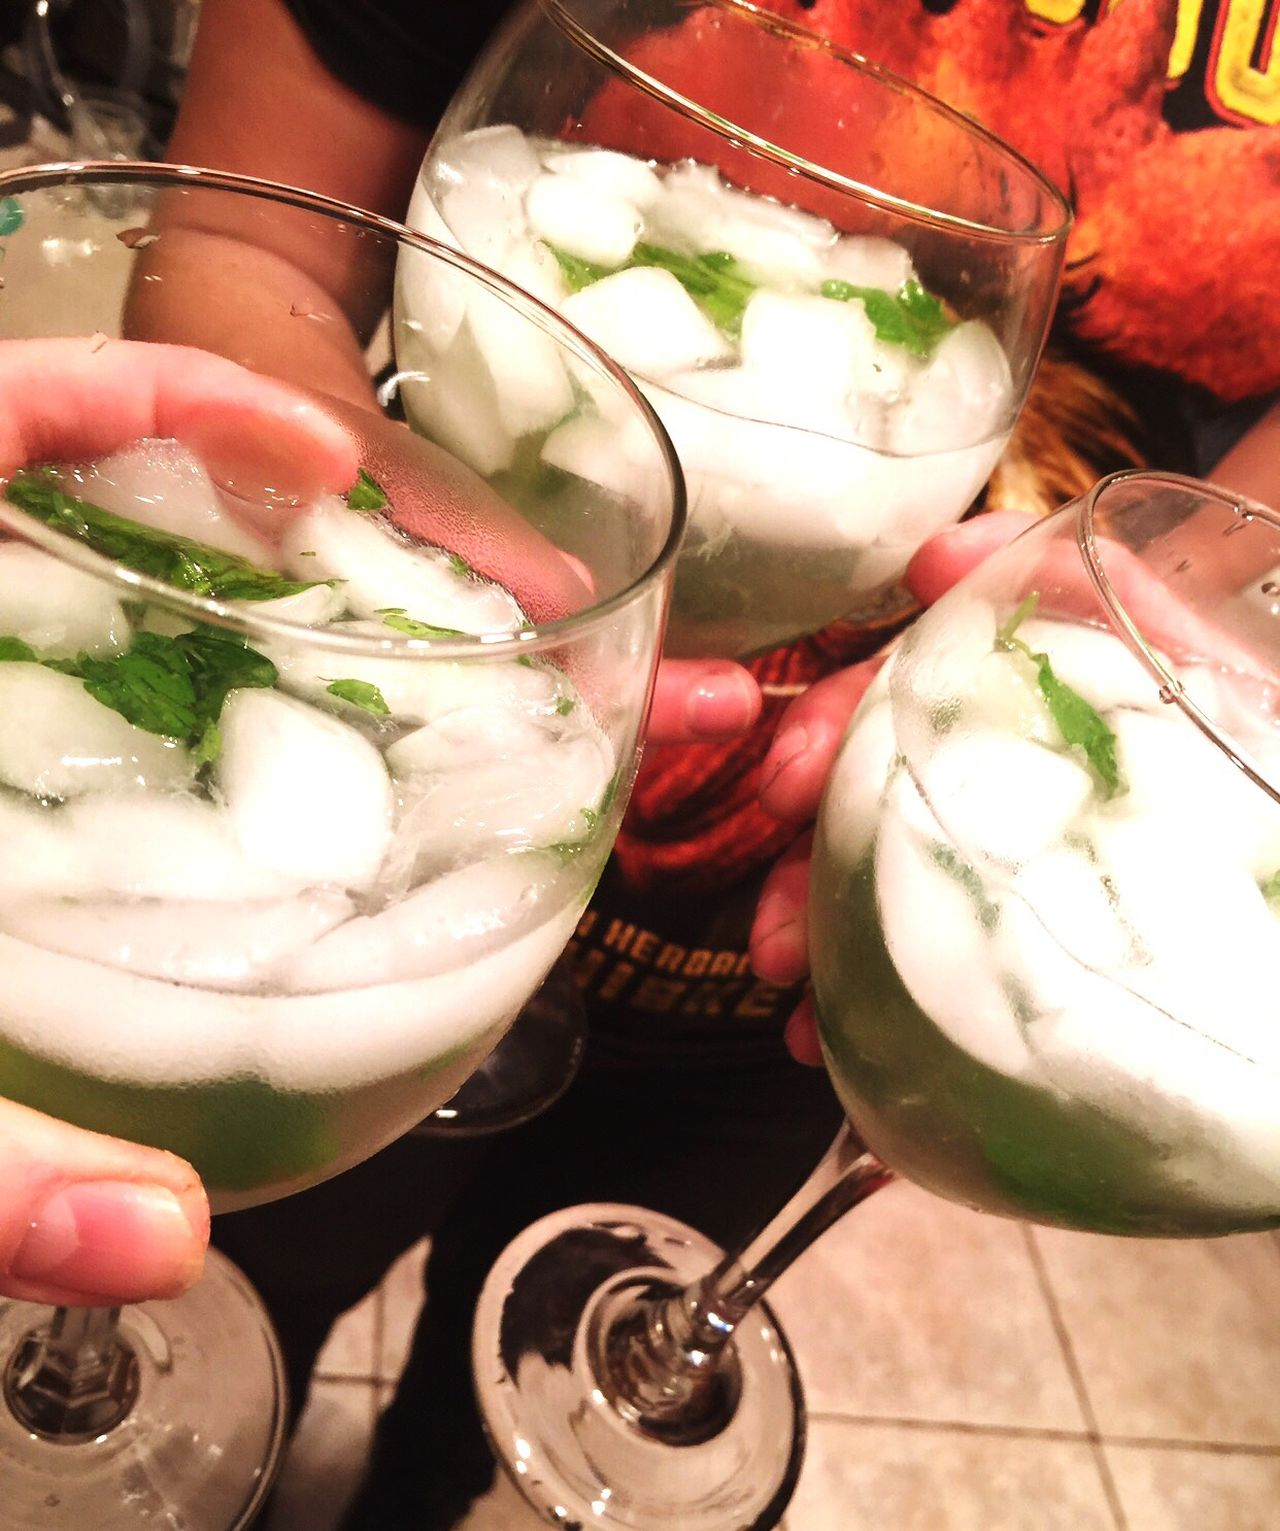 Liquid Lunch Mojitos Cheers Homemade Mojitos Celebration Sothern California Drinking Drinks Green Fresh Mint Lime Mixed Drinks Alcohol Goblet Having Fun Yummy IPhoneography Yum Share EyeEm Cheers Family Time Friends Friendship Show Us Your Takeaway!